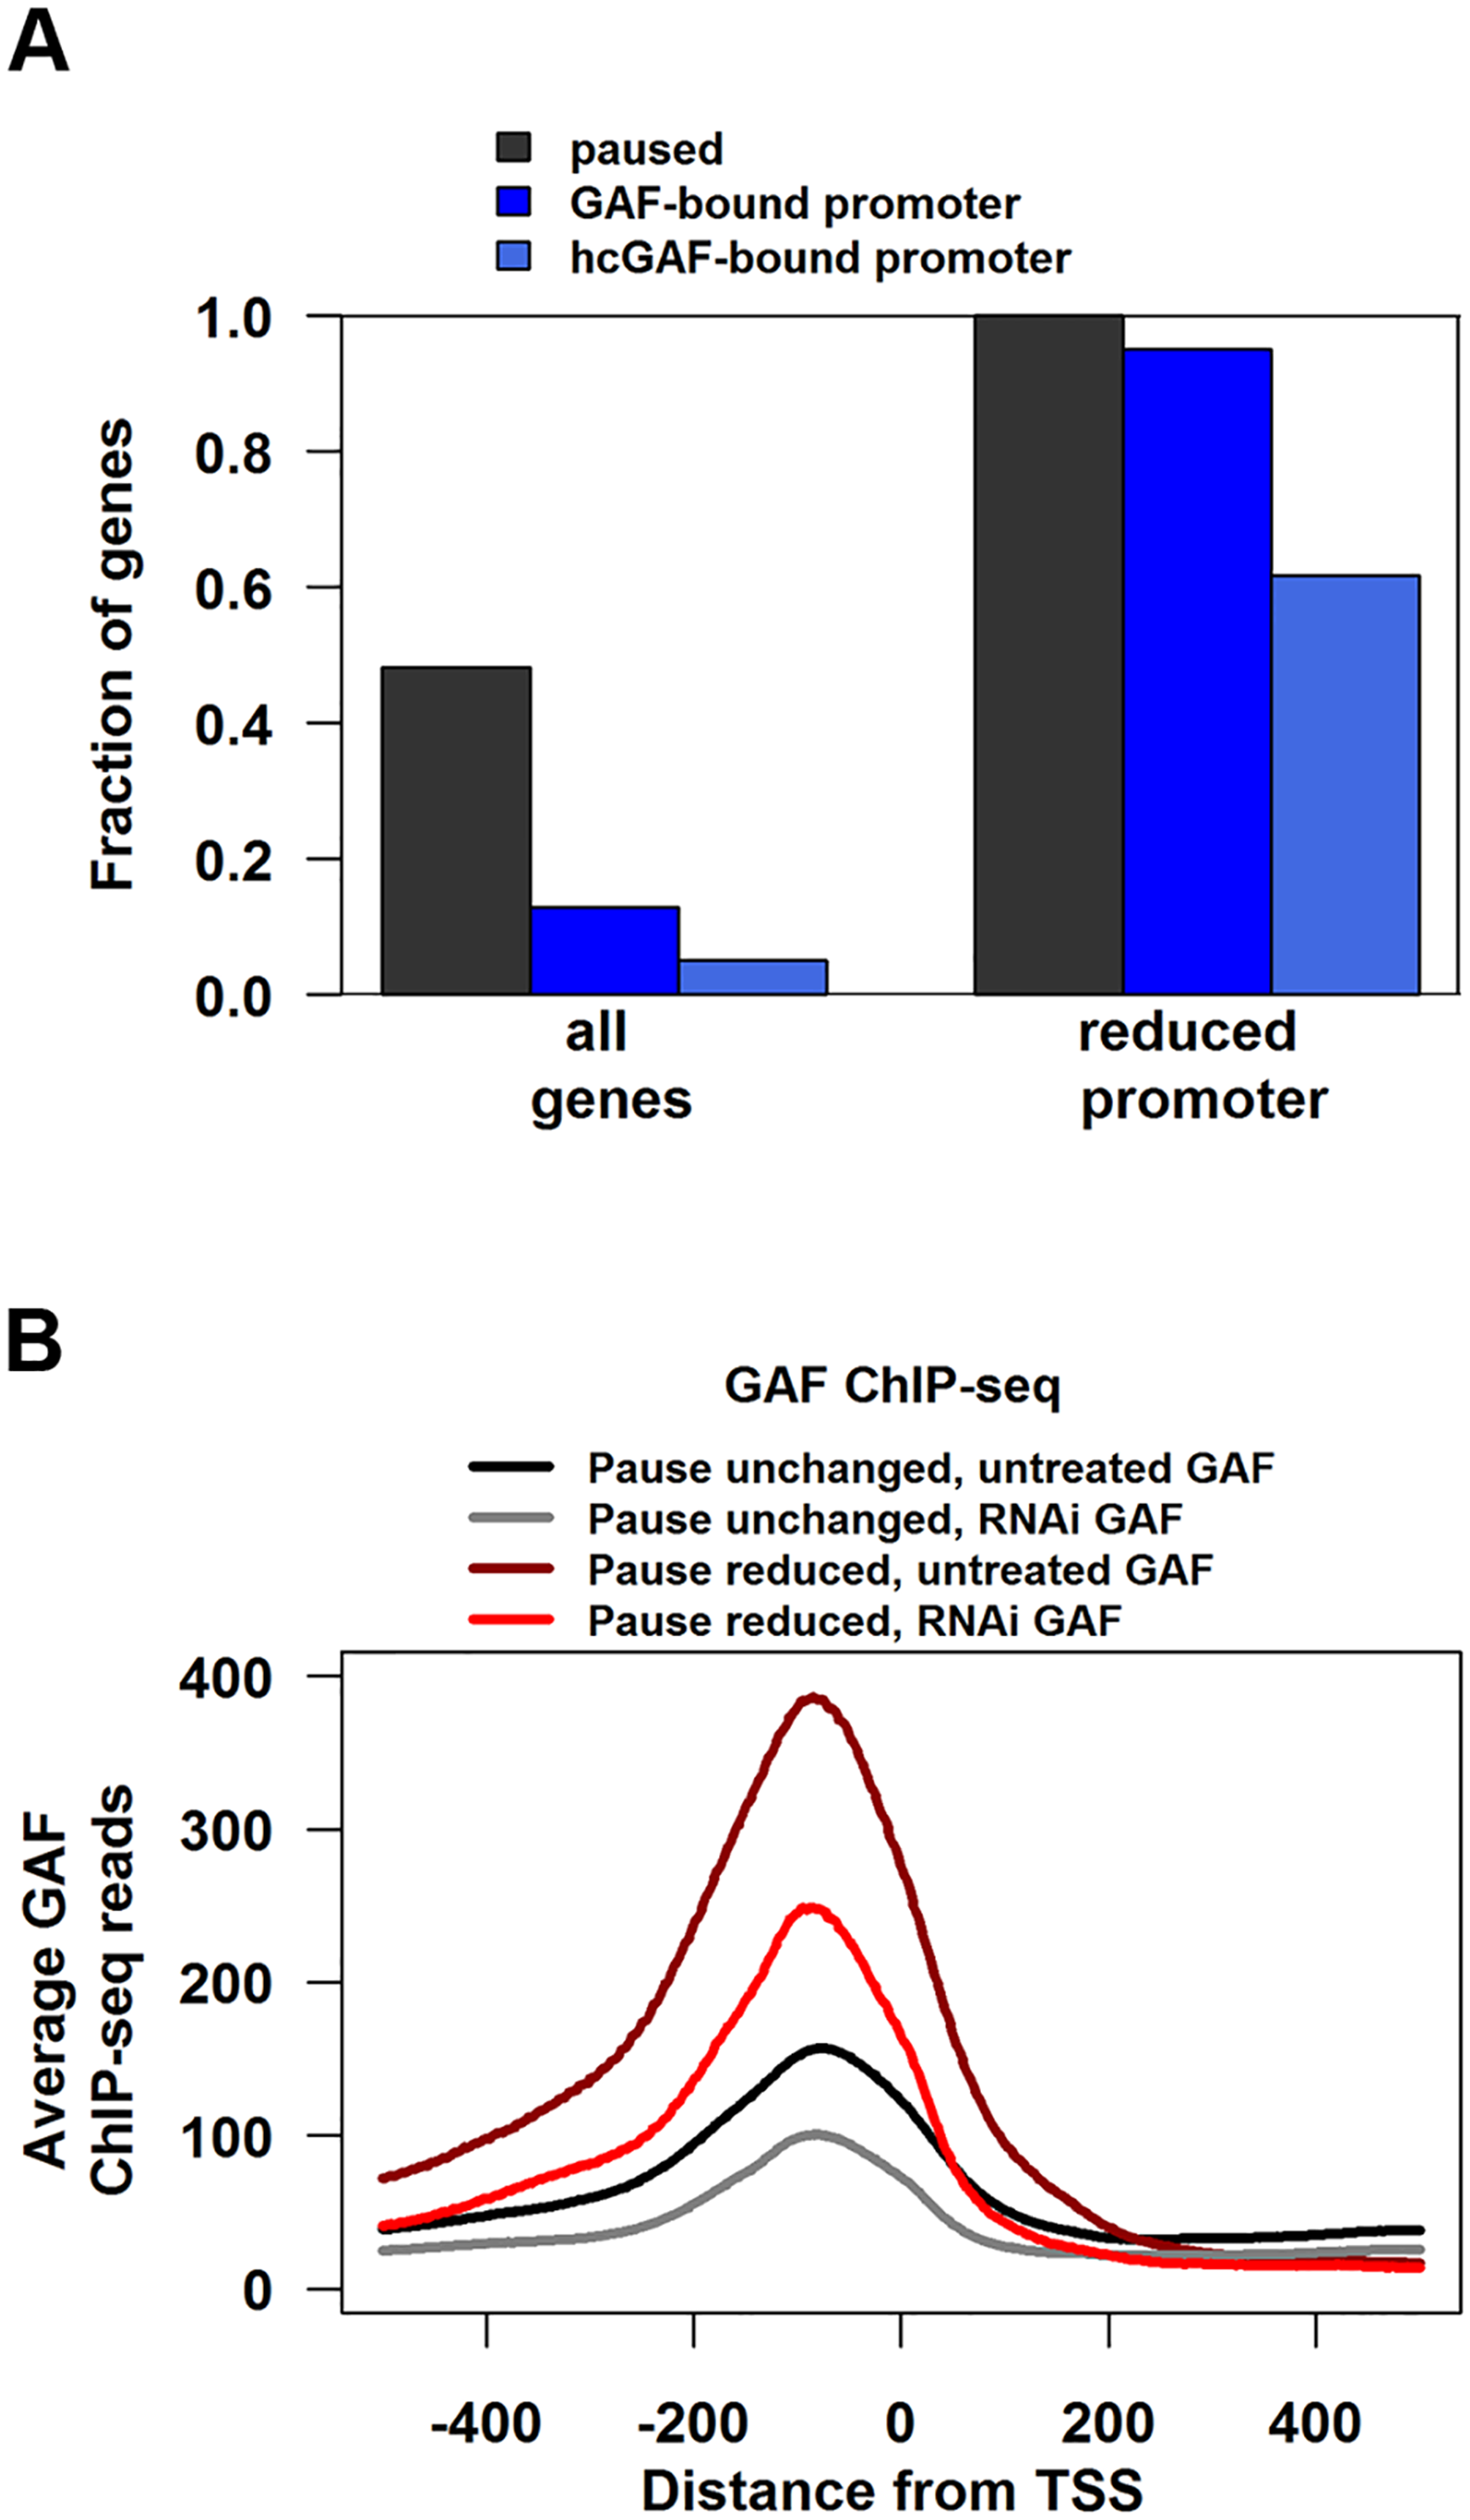 Genes with reduced pausing in GAF-RNAi are enriched for GAF-bound promoters.